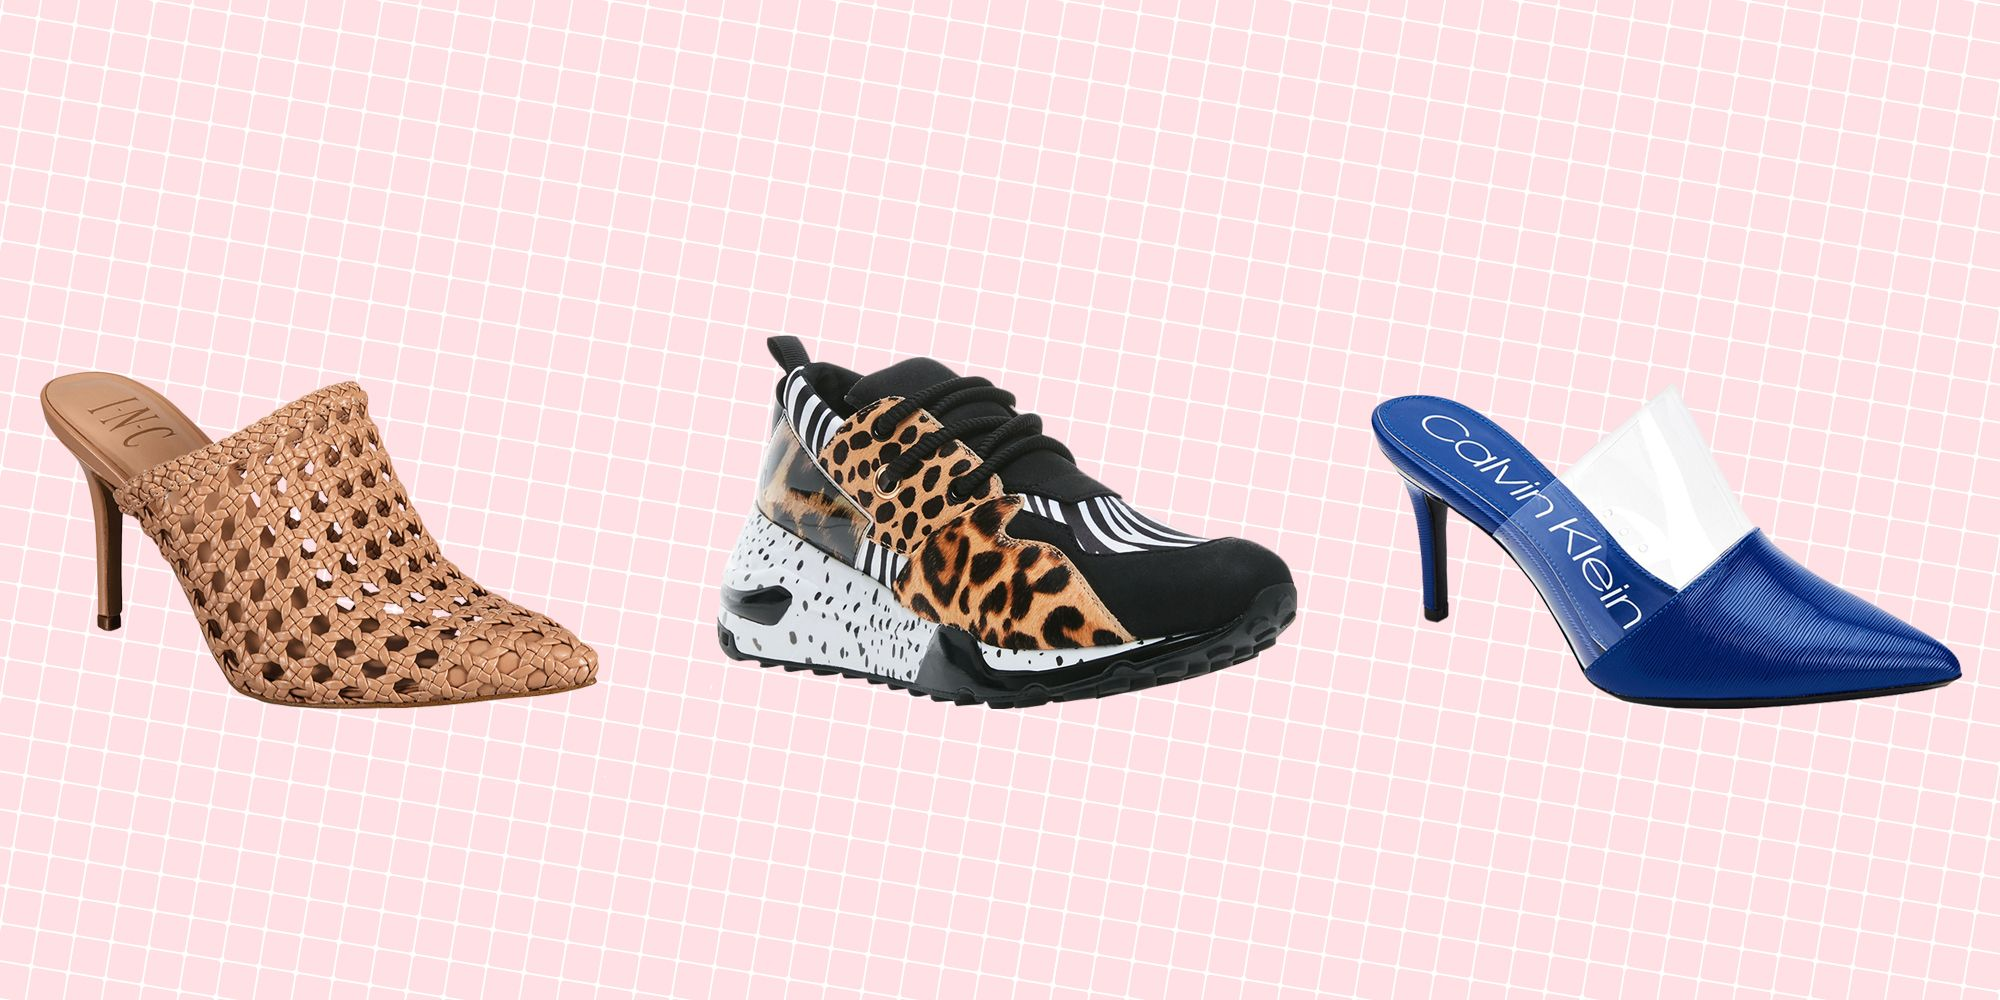 Shop the Shoes We Always Get Compliments On